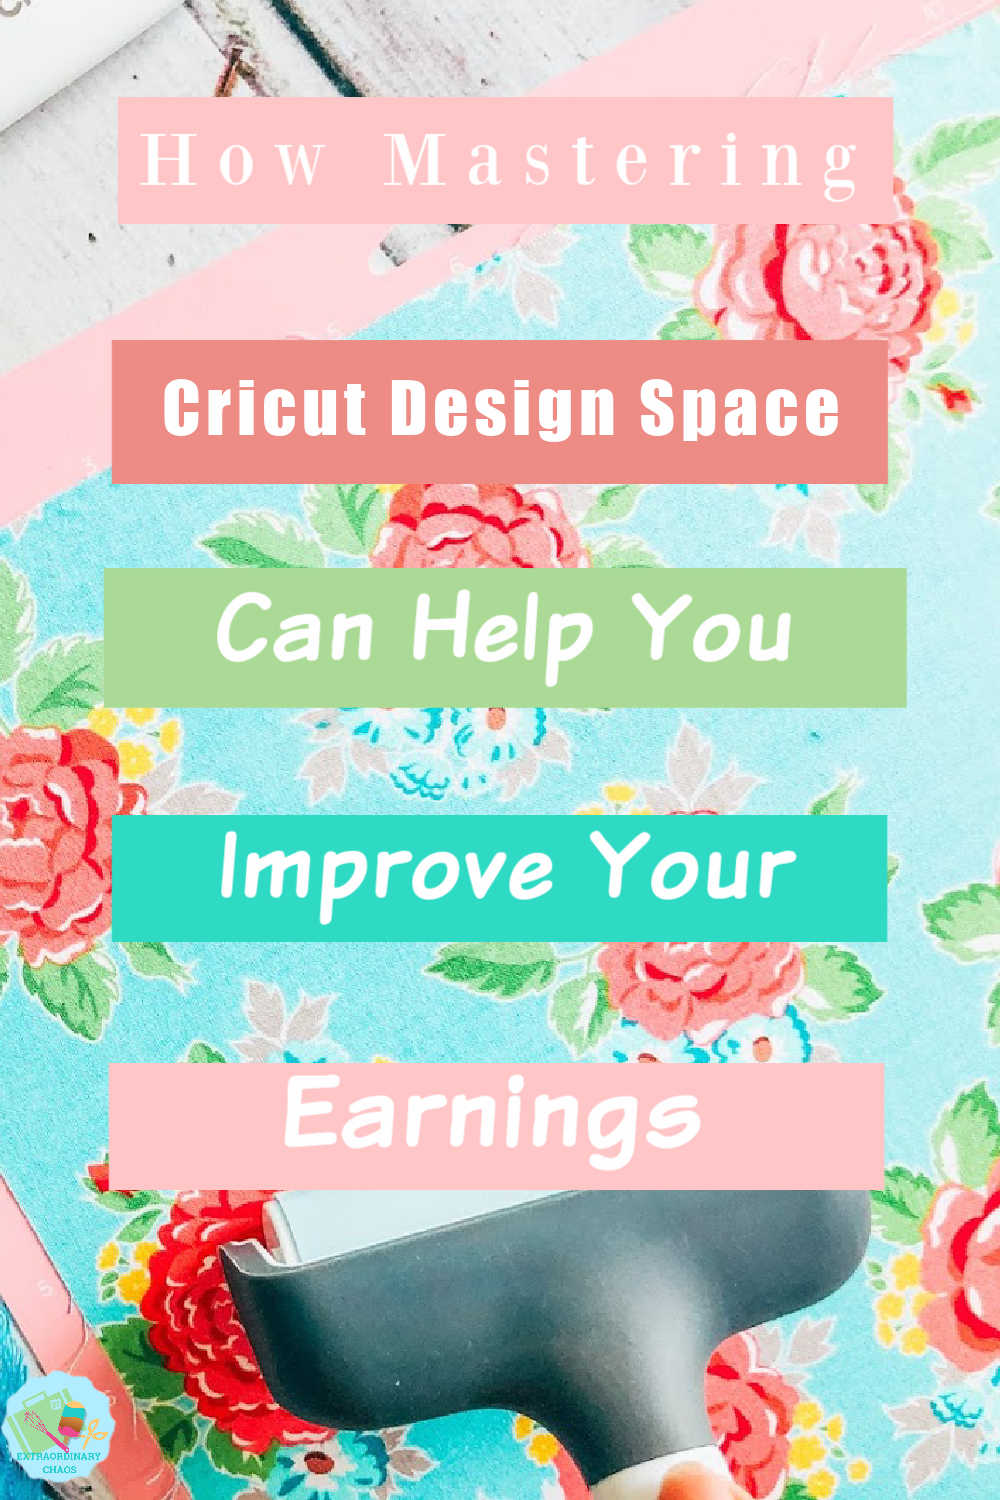 How mastering Cricut Design Space Can Help You Improve Your Earnings From Your Craft Business